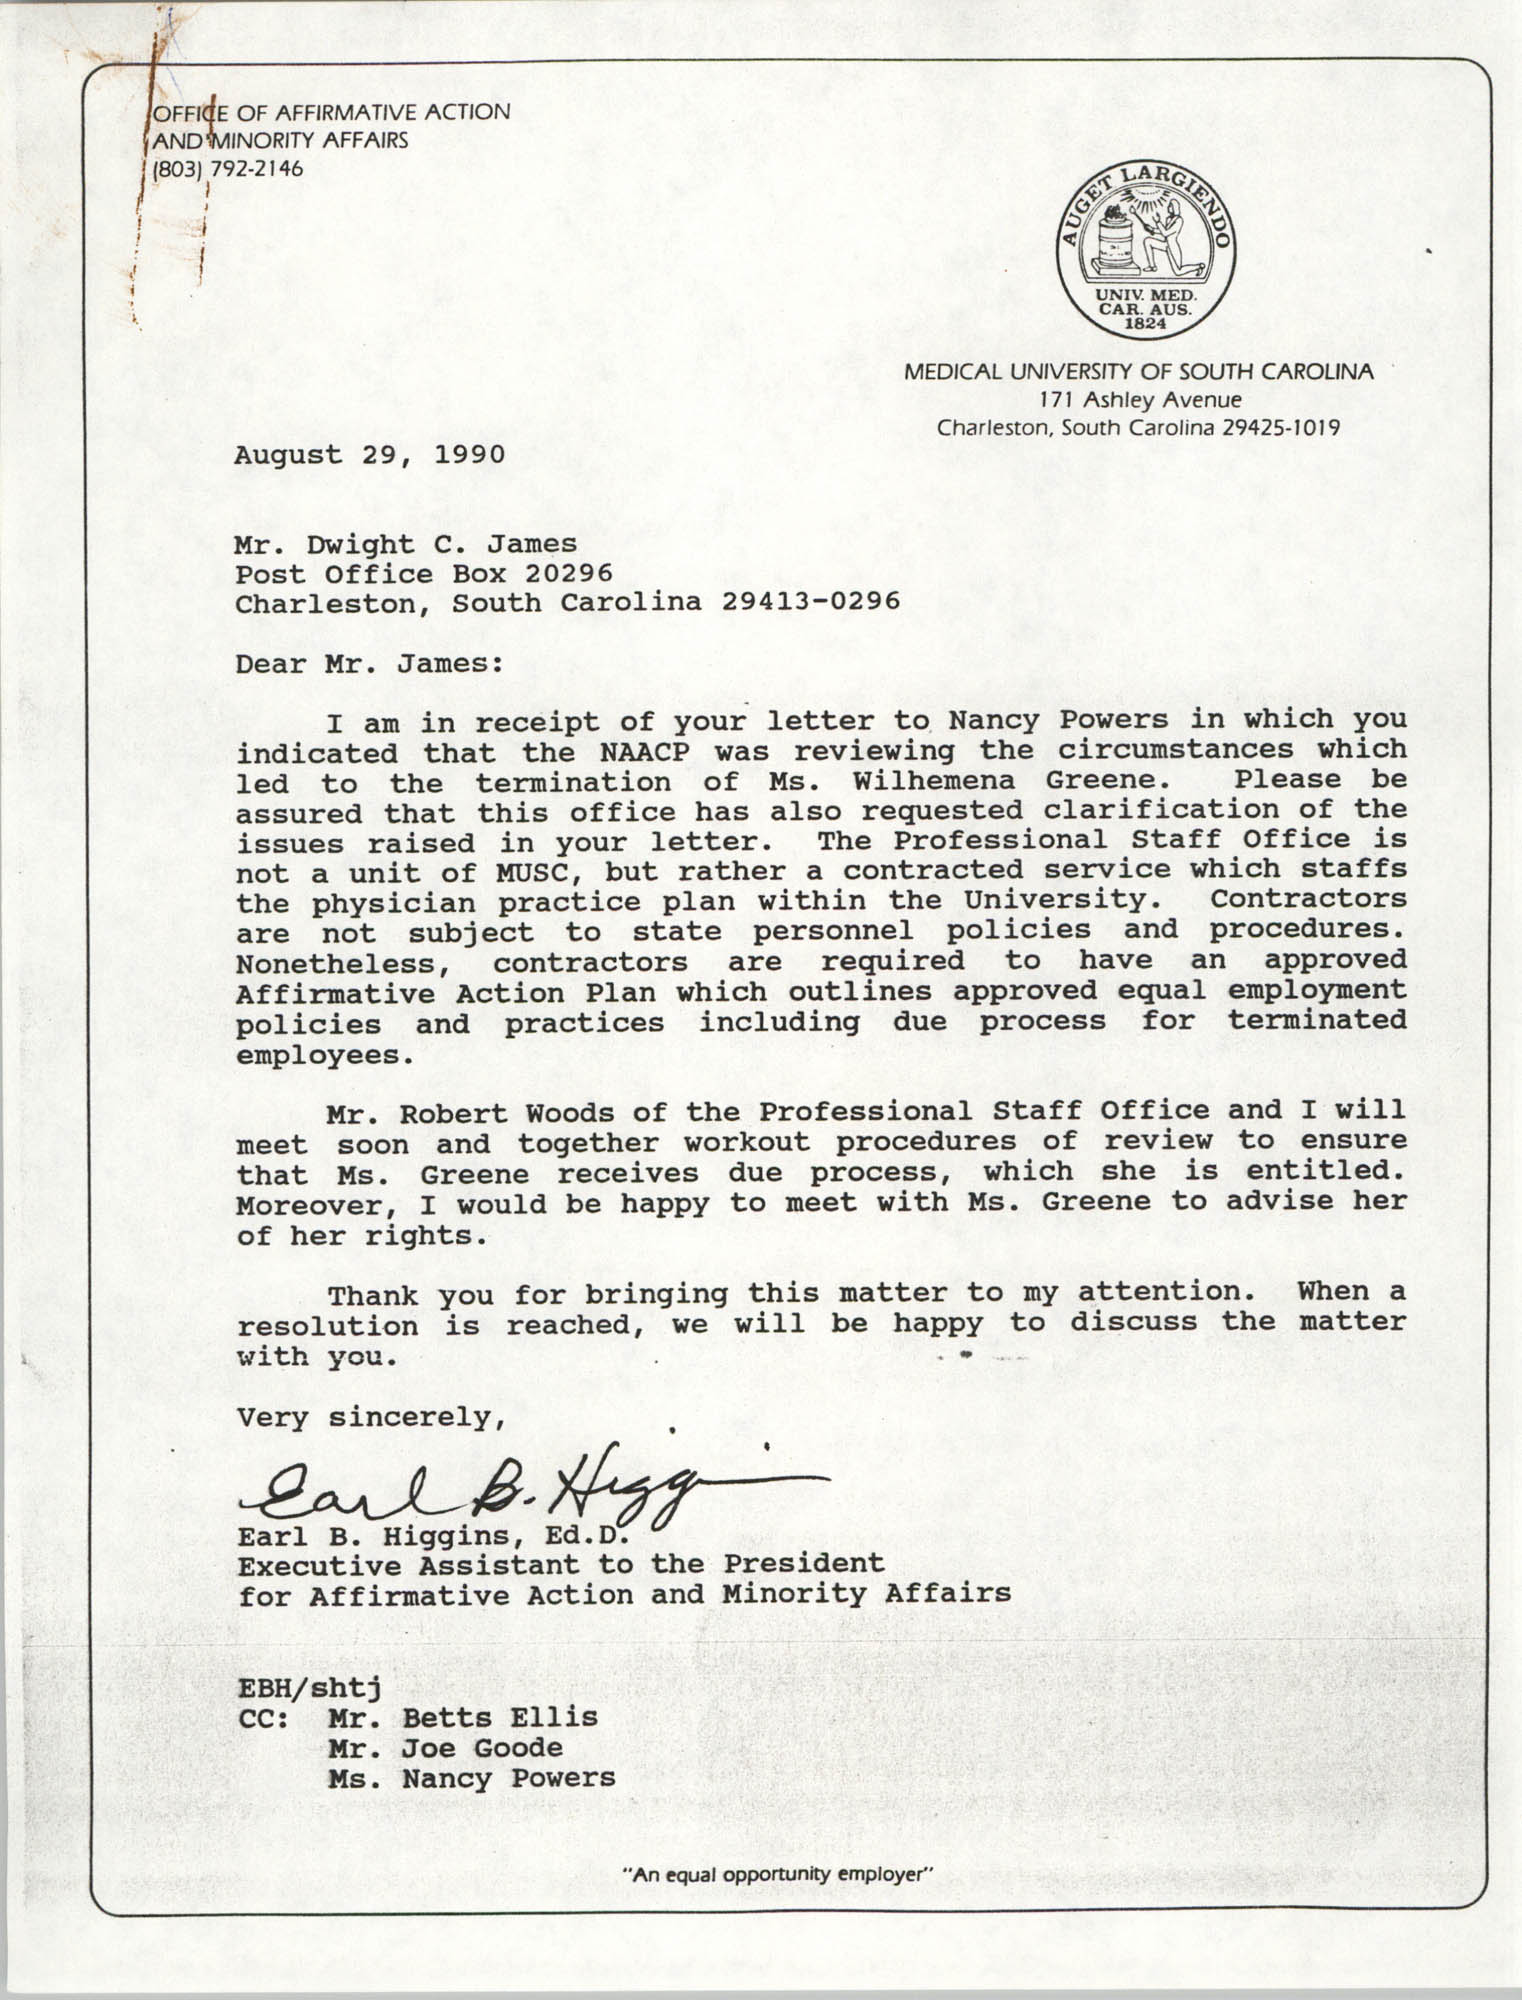 Letter from Earl B. Higgins to Dwight C. James, August 29, 1990